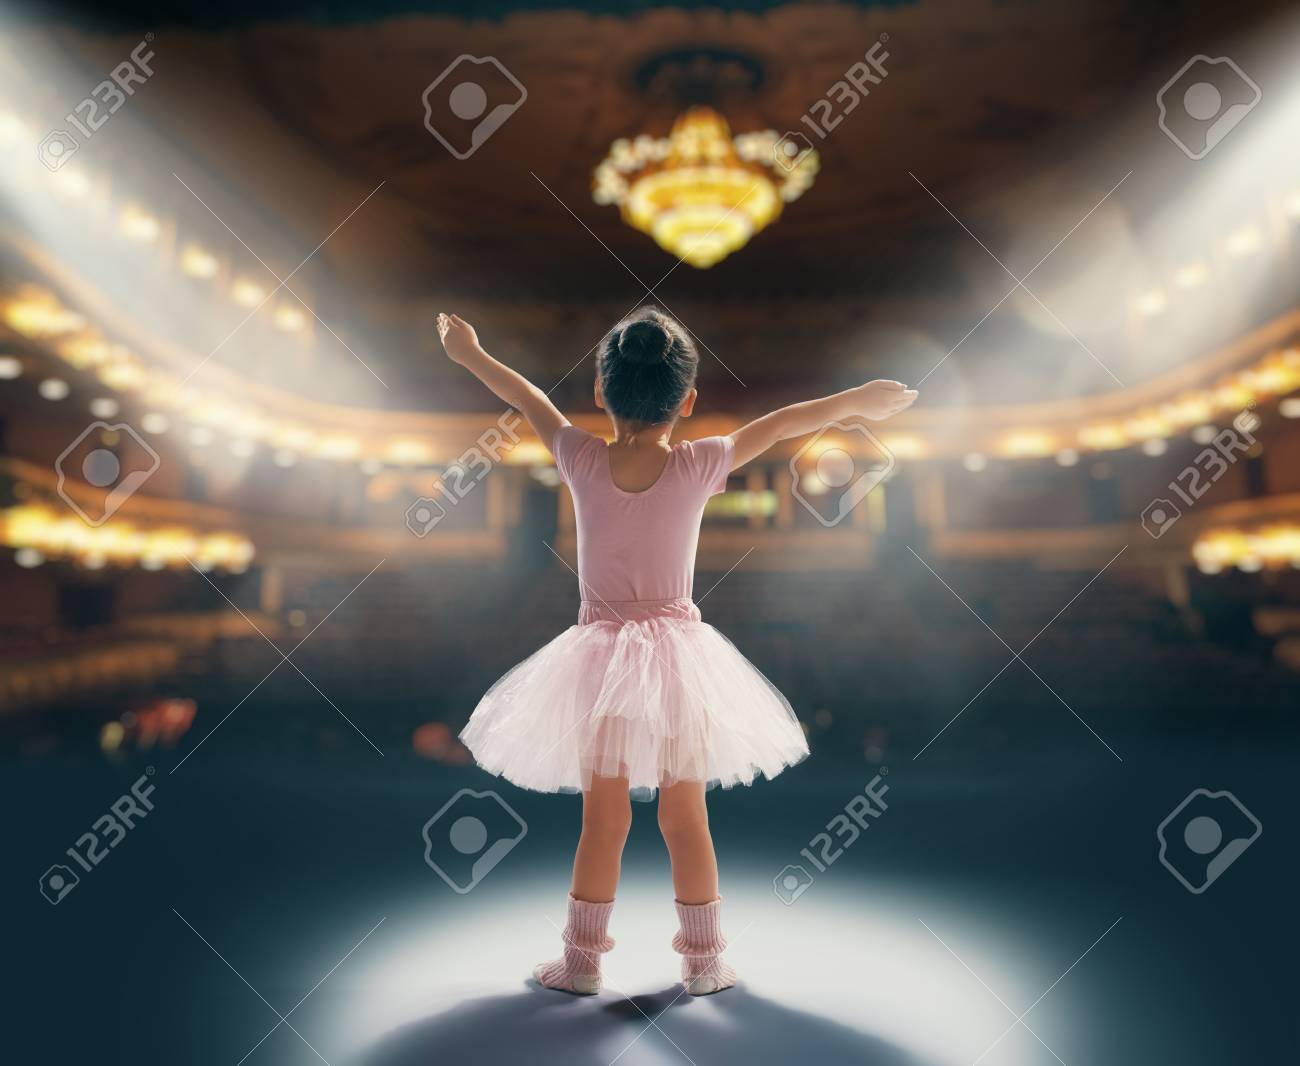 Cute little girl dreaming of becoming a ballerina. Child girl in a pink tutu dancing on the stage. Baby girl is studying ballet. - 117287120